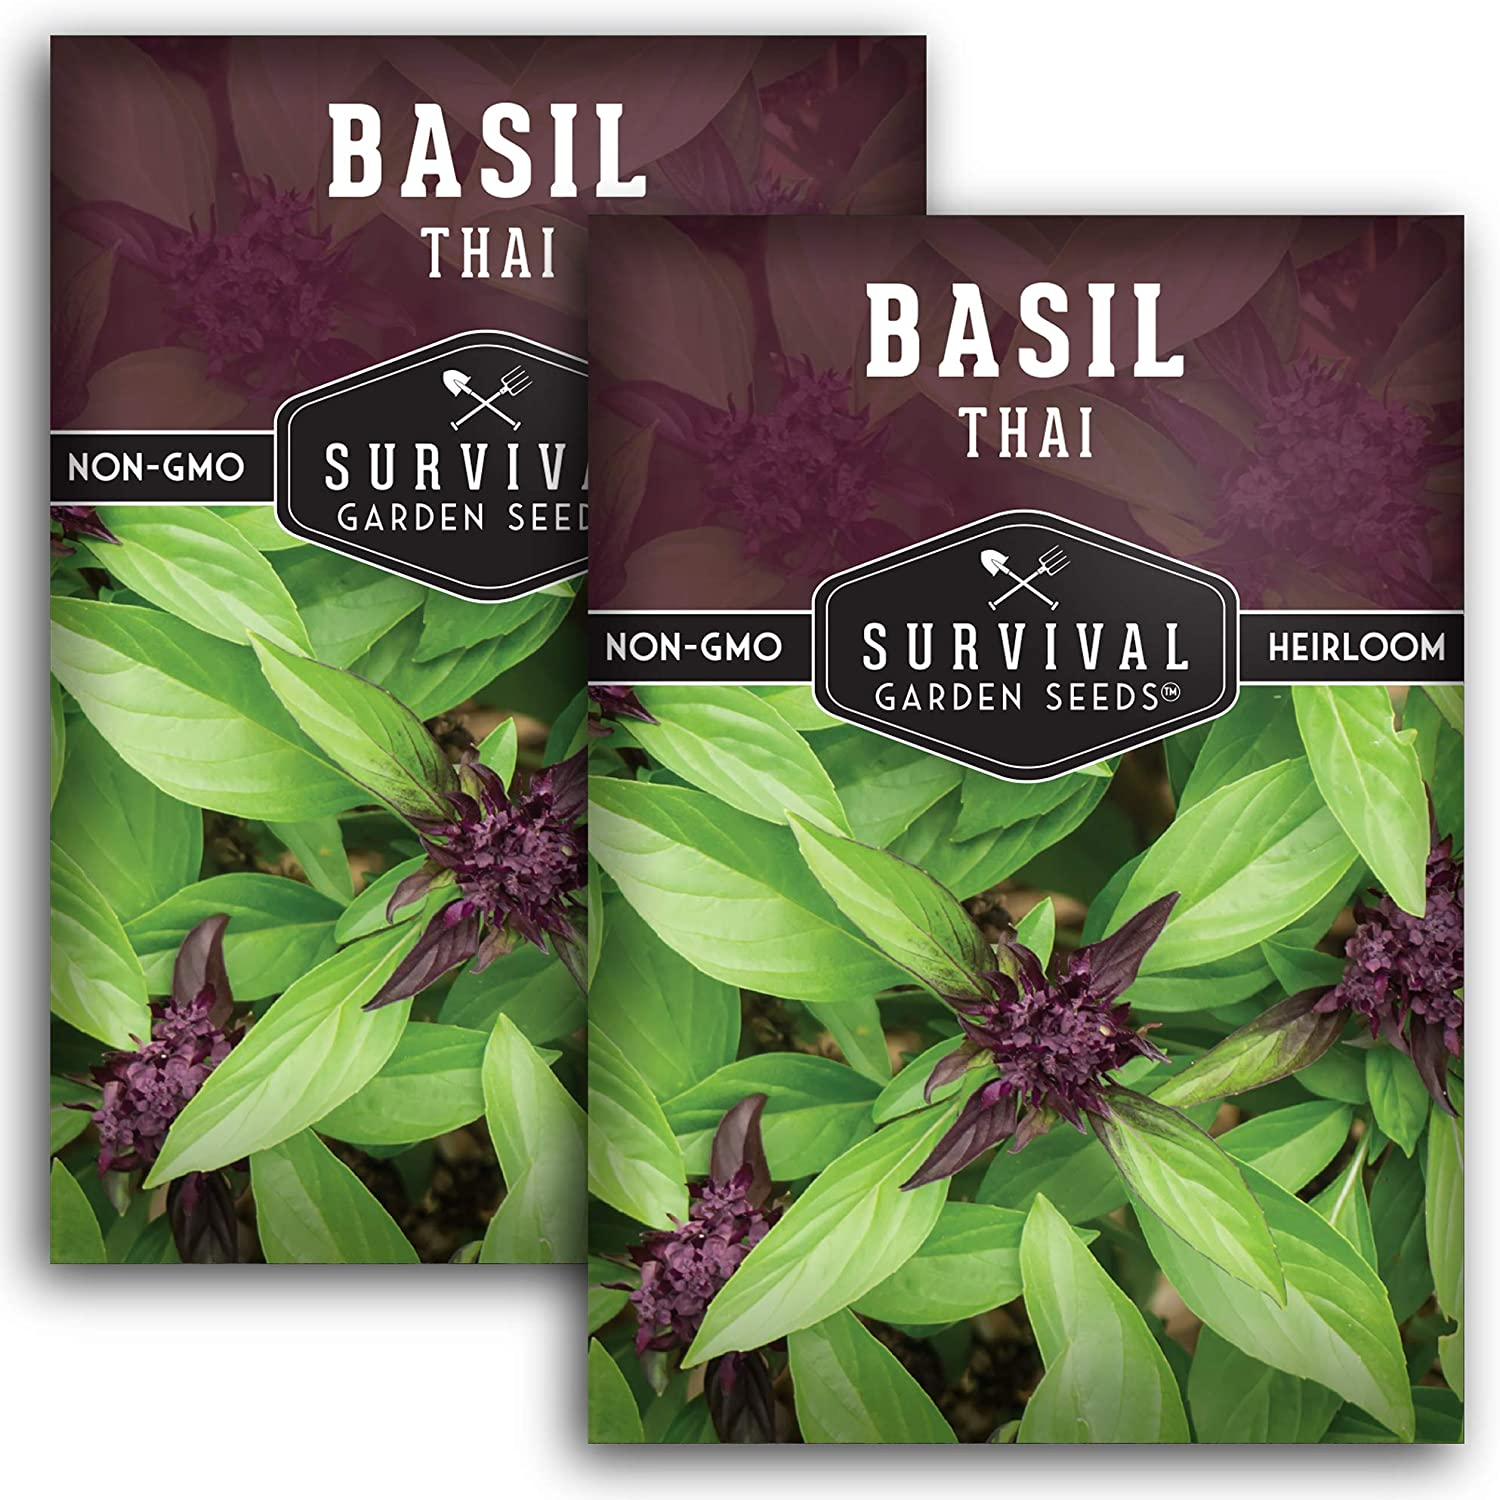 Survival Garden Seeds - Thai Basil Seed for Planting - 2 Packets with Instructions to Plant and Grow in Your Home Vegetable Garden - Non-GMO Heirloom Variety